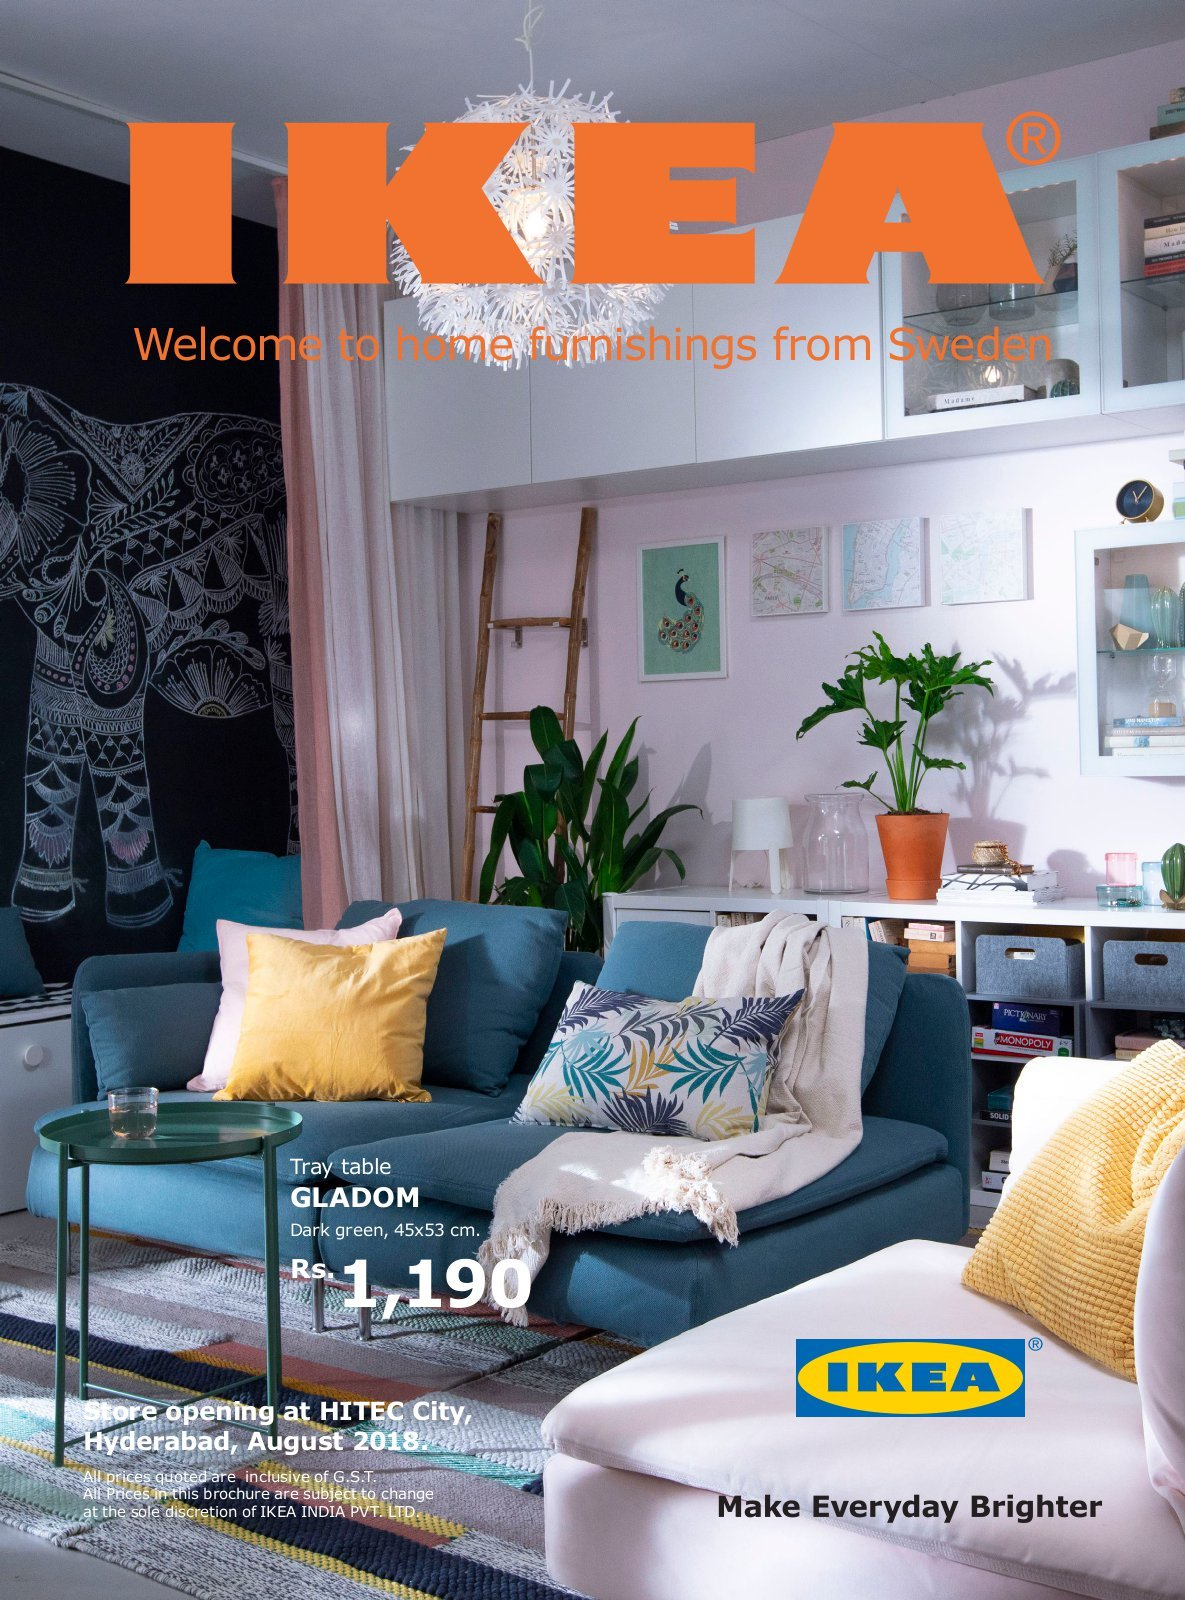 IKEA's first India store opening at Hyderabad